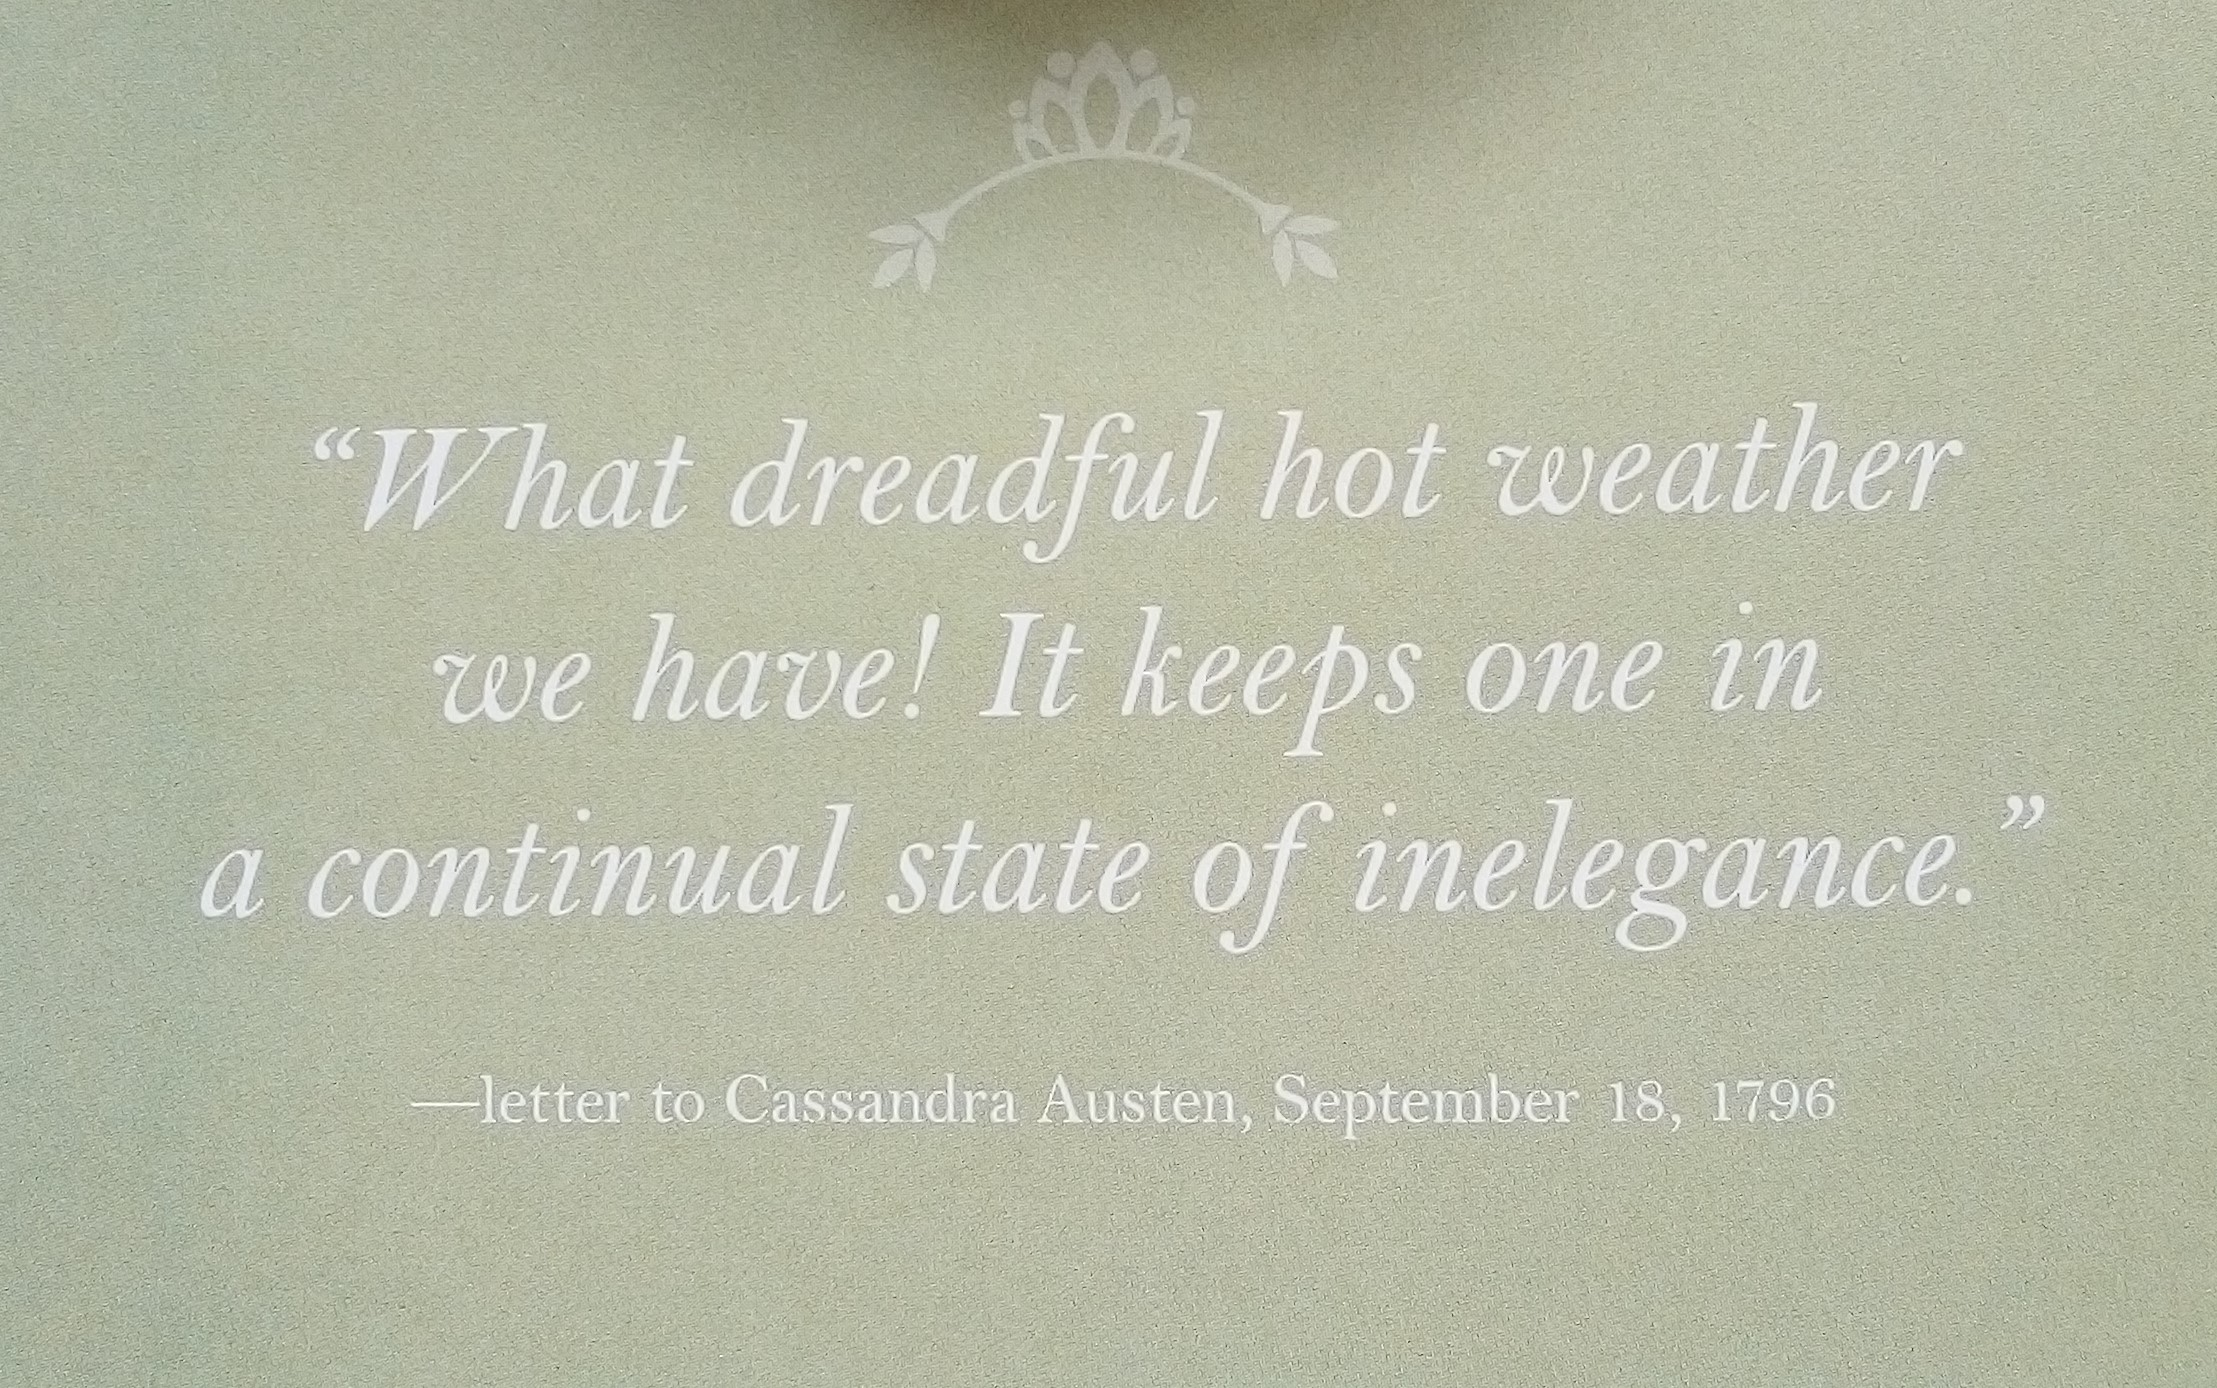 Jane Austen quote re hot weather